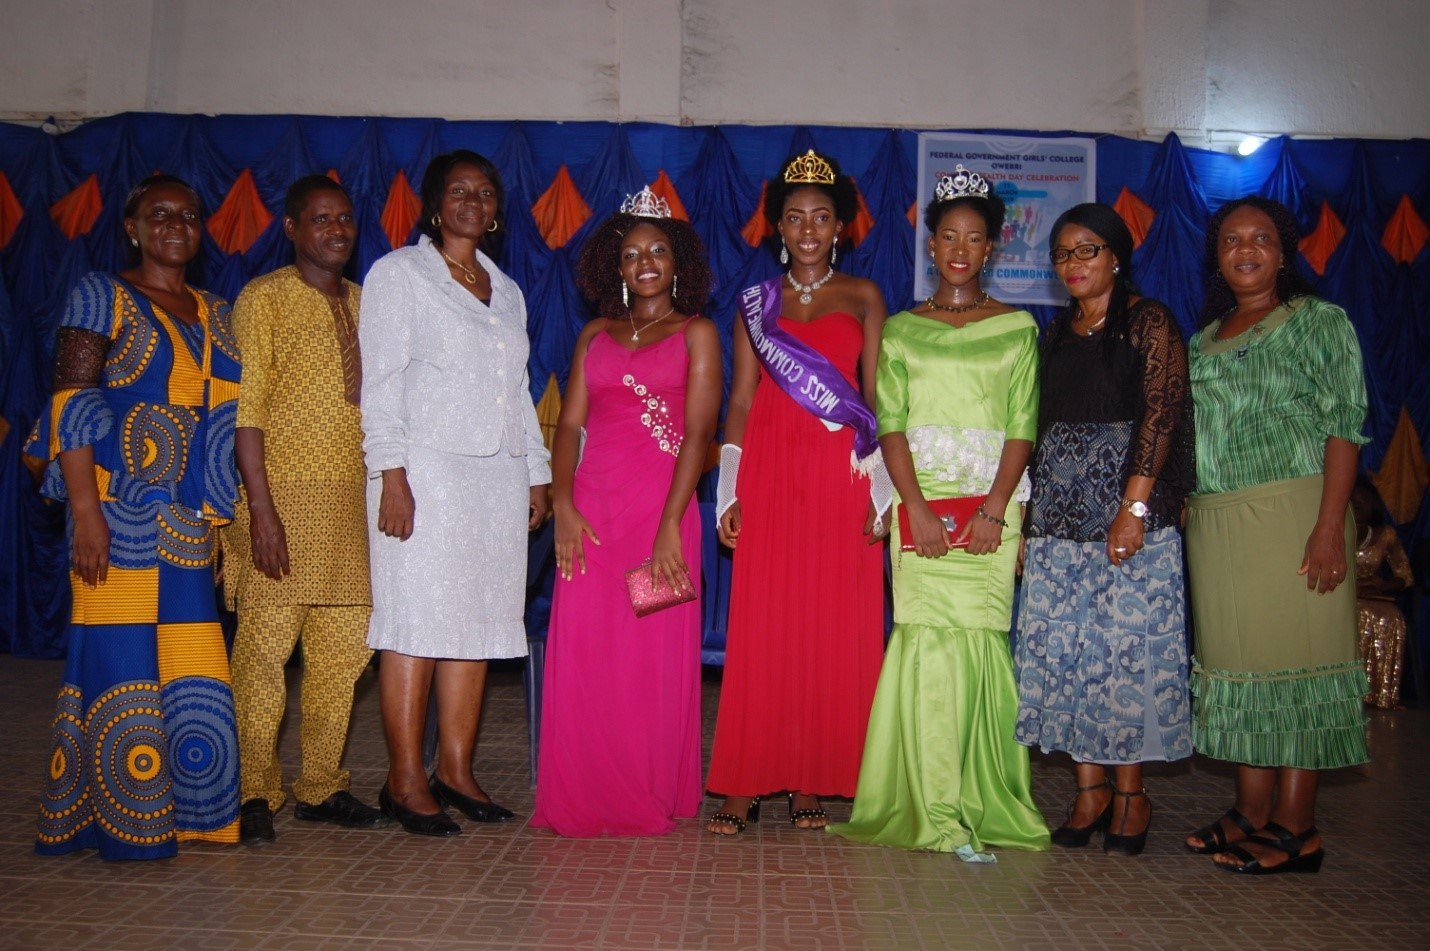 Check Out Beautiful Pictures From Commonwealth Day At Fggc Owerri Nigerian Educational Blog Online Learning Nigeria